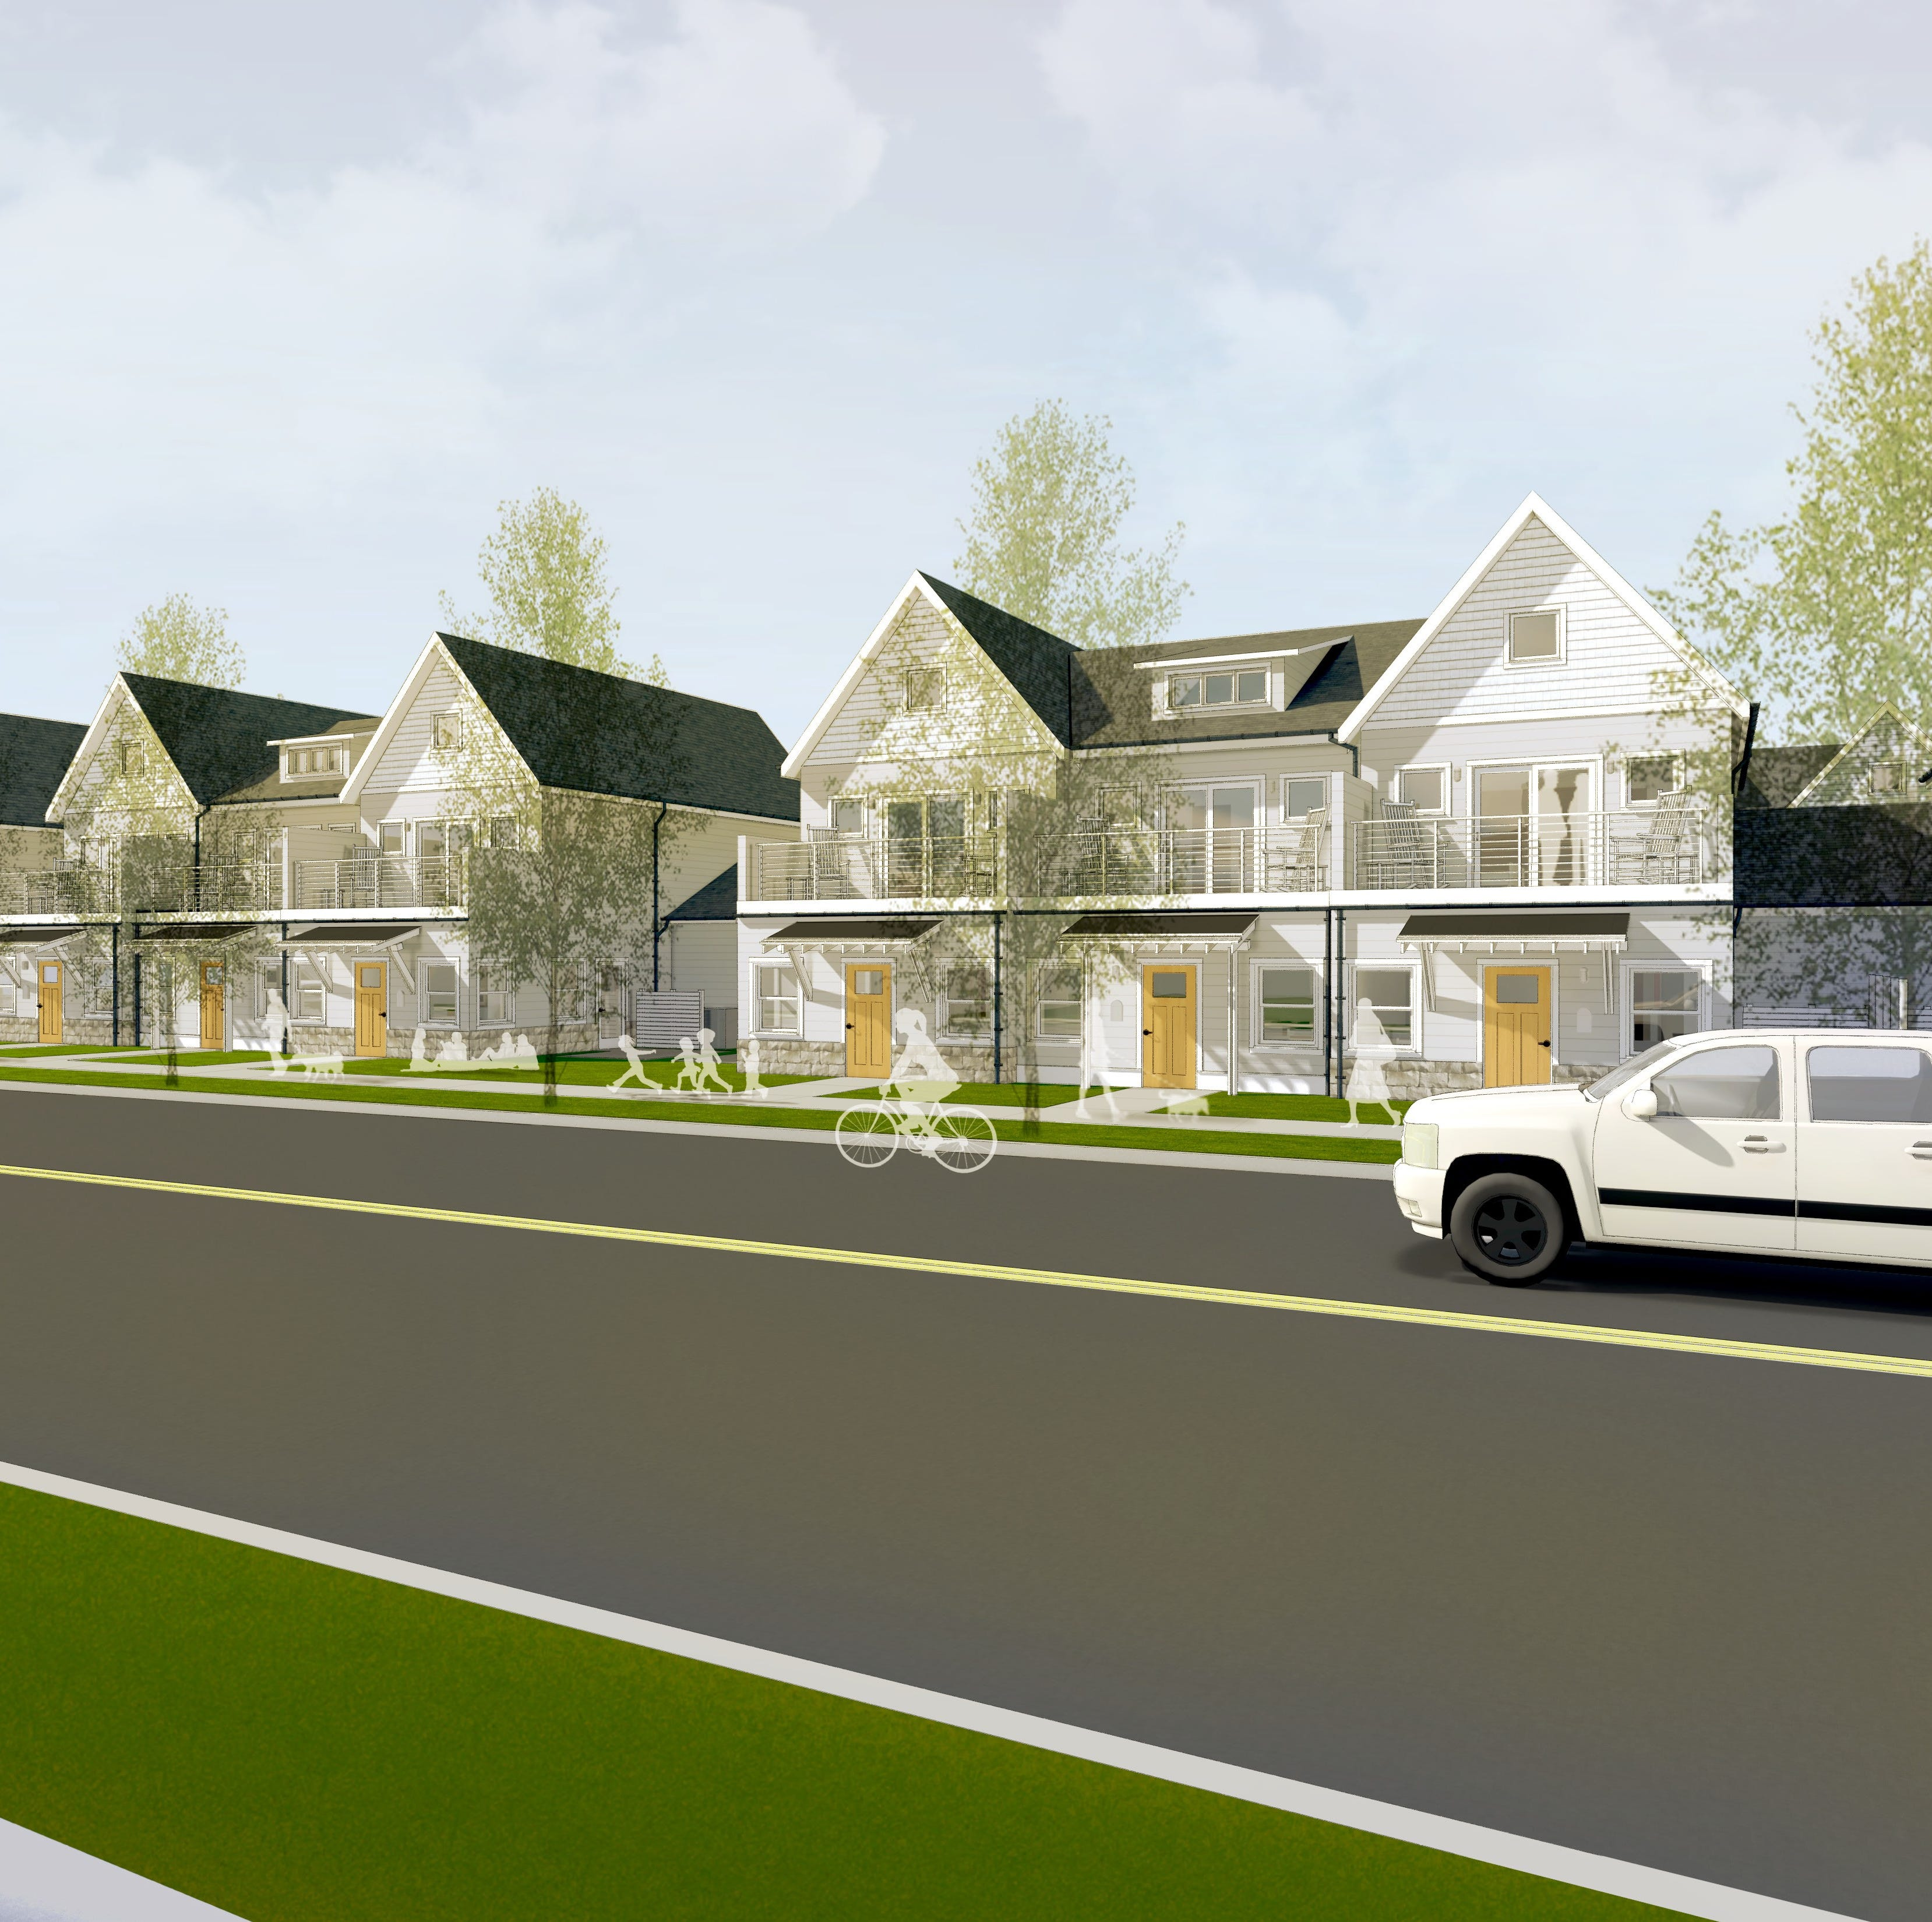 Sheboygan breaks ground on Water's Edge condo project | Streetwise